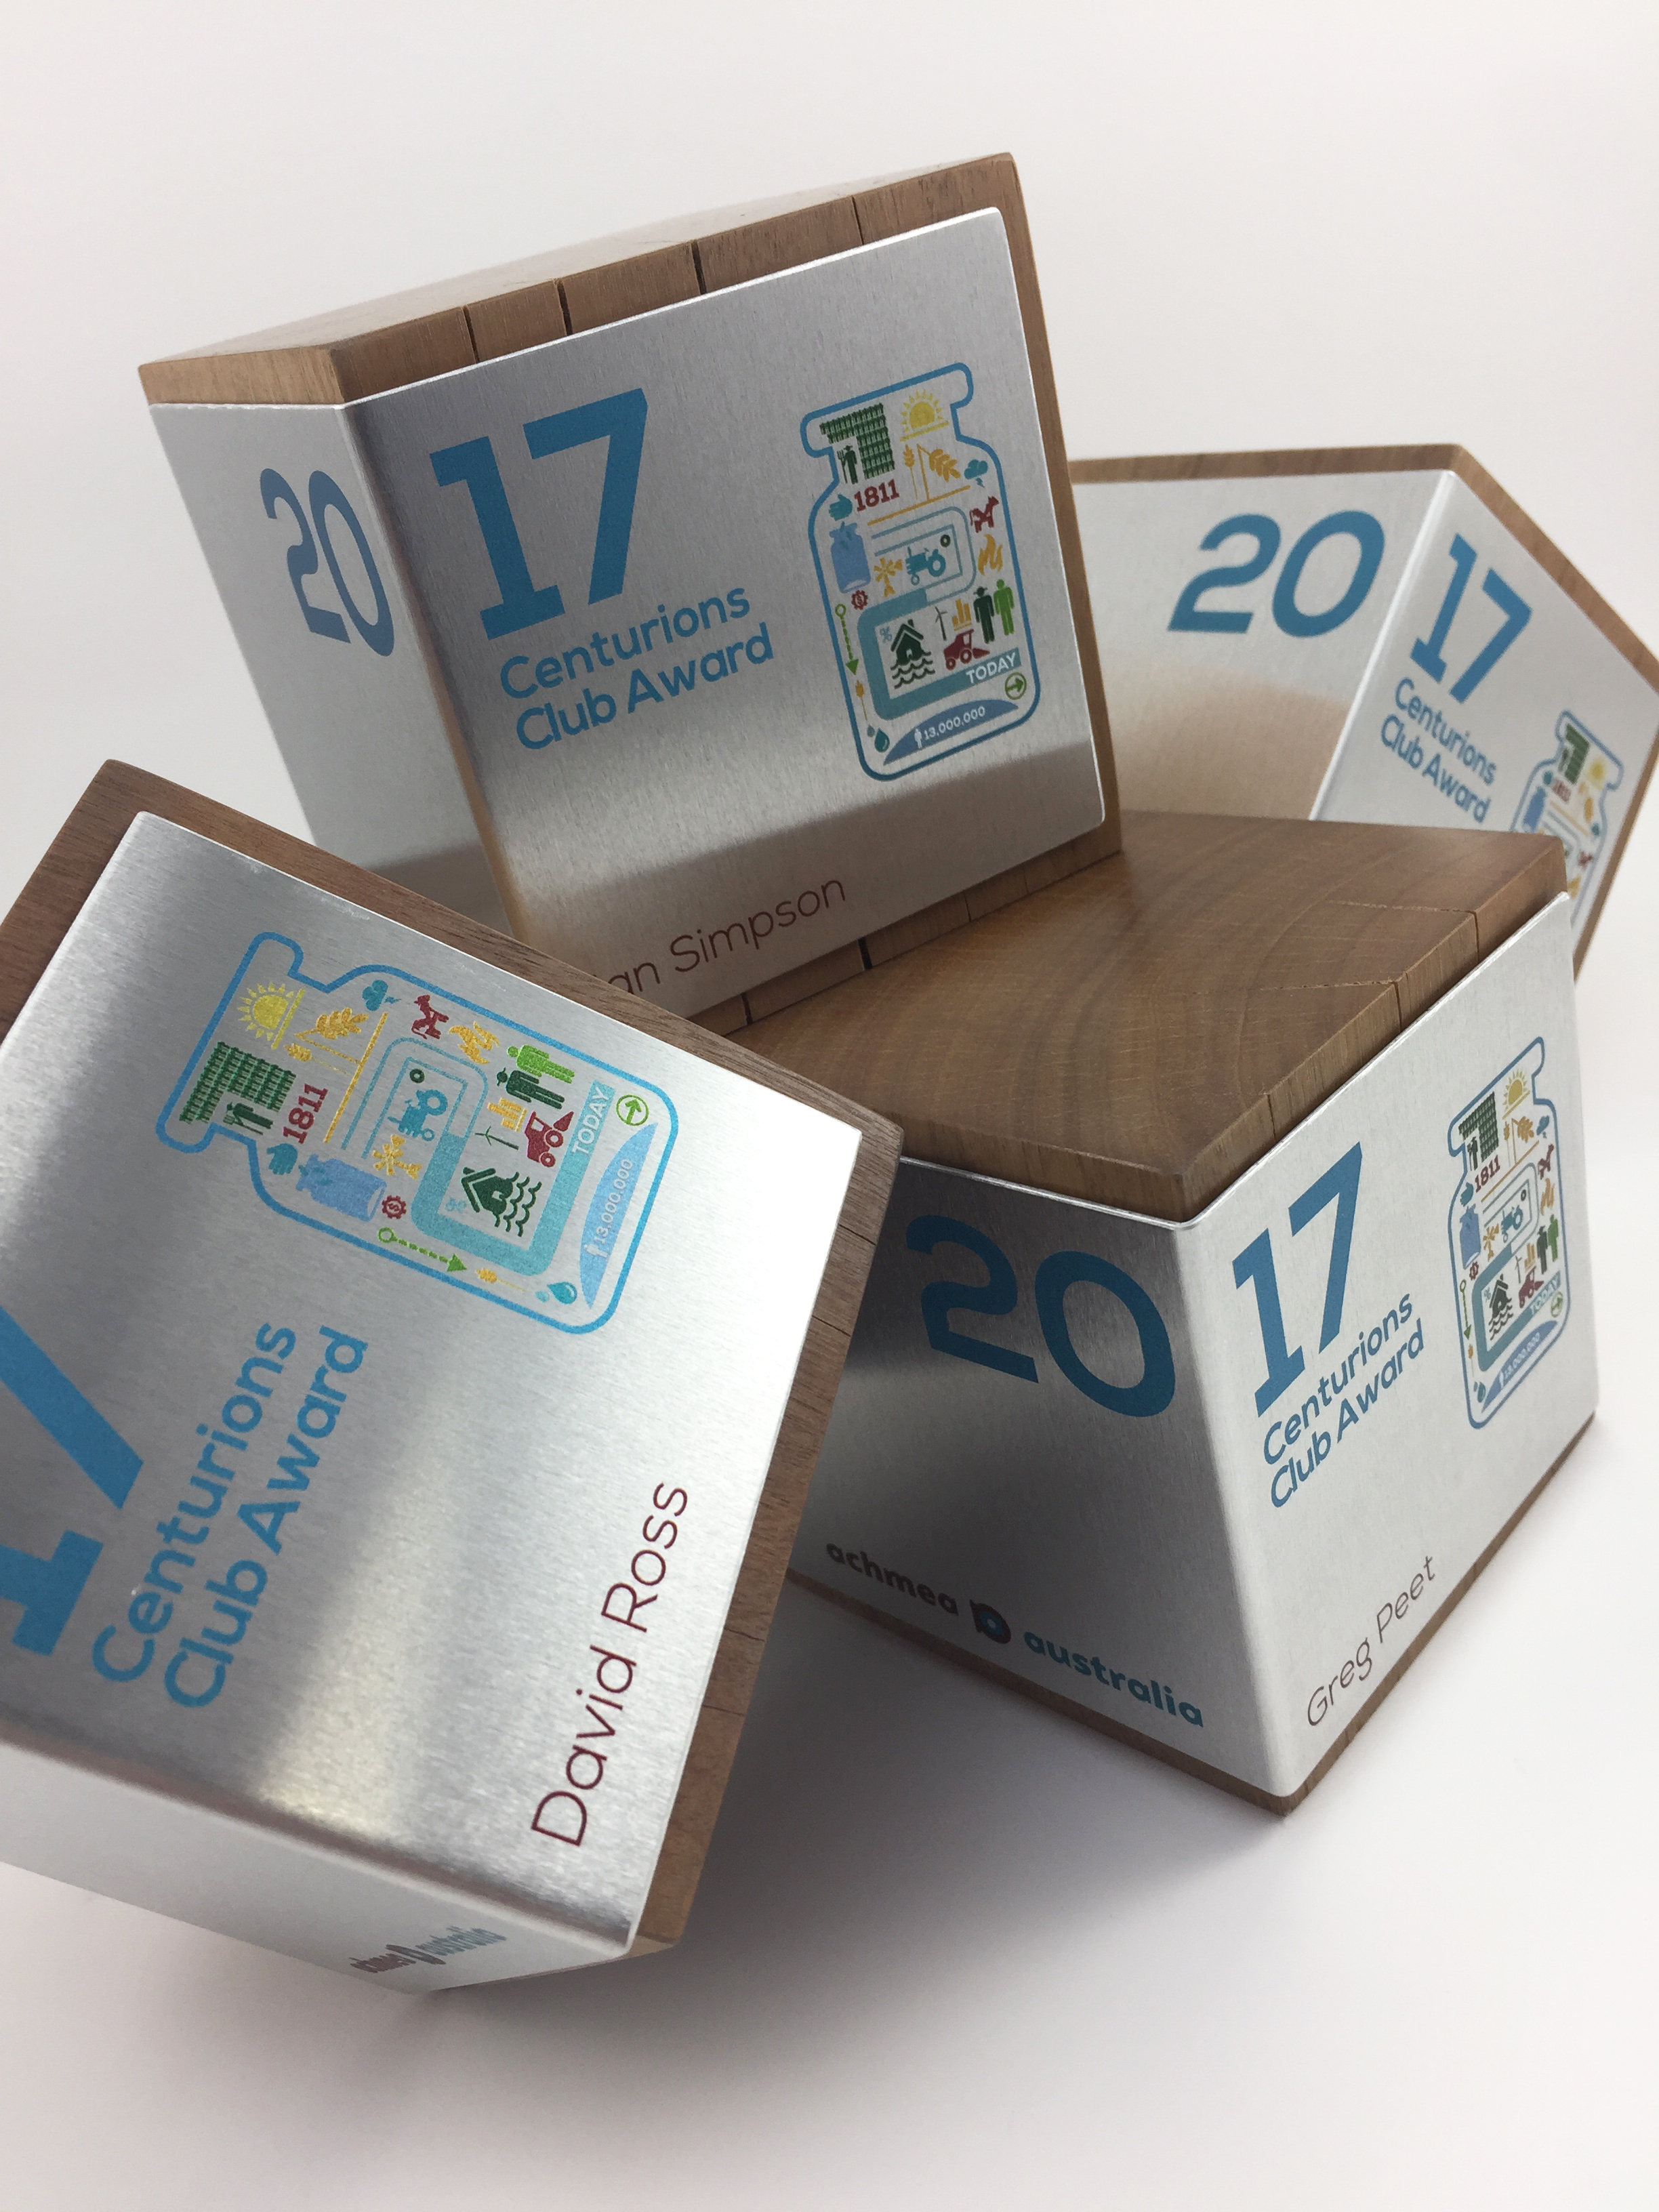 achmea-recycled-timber-cube-eco-metal-award-trophy-02.jpg